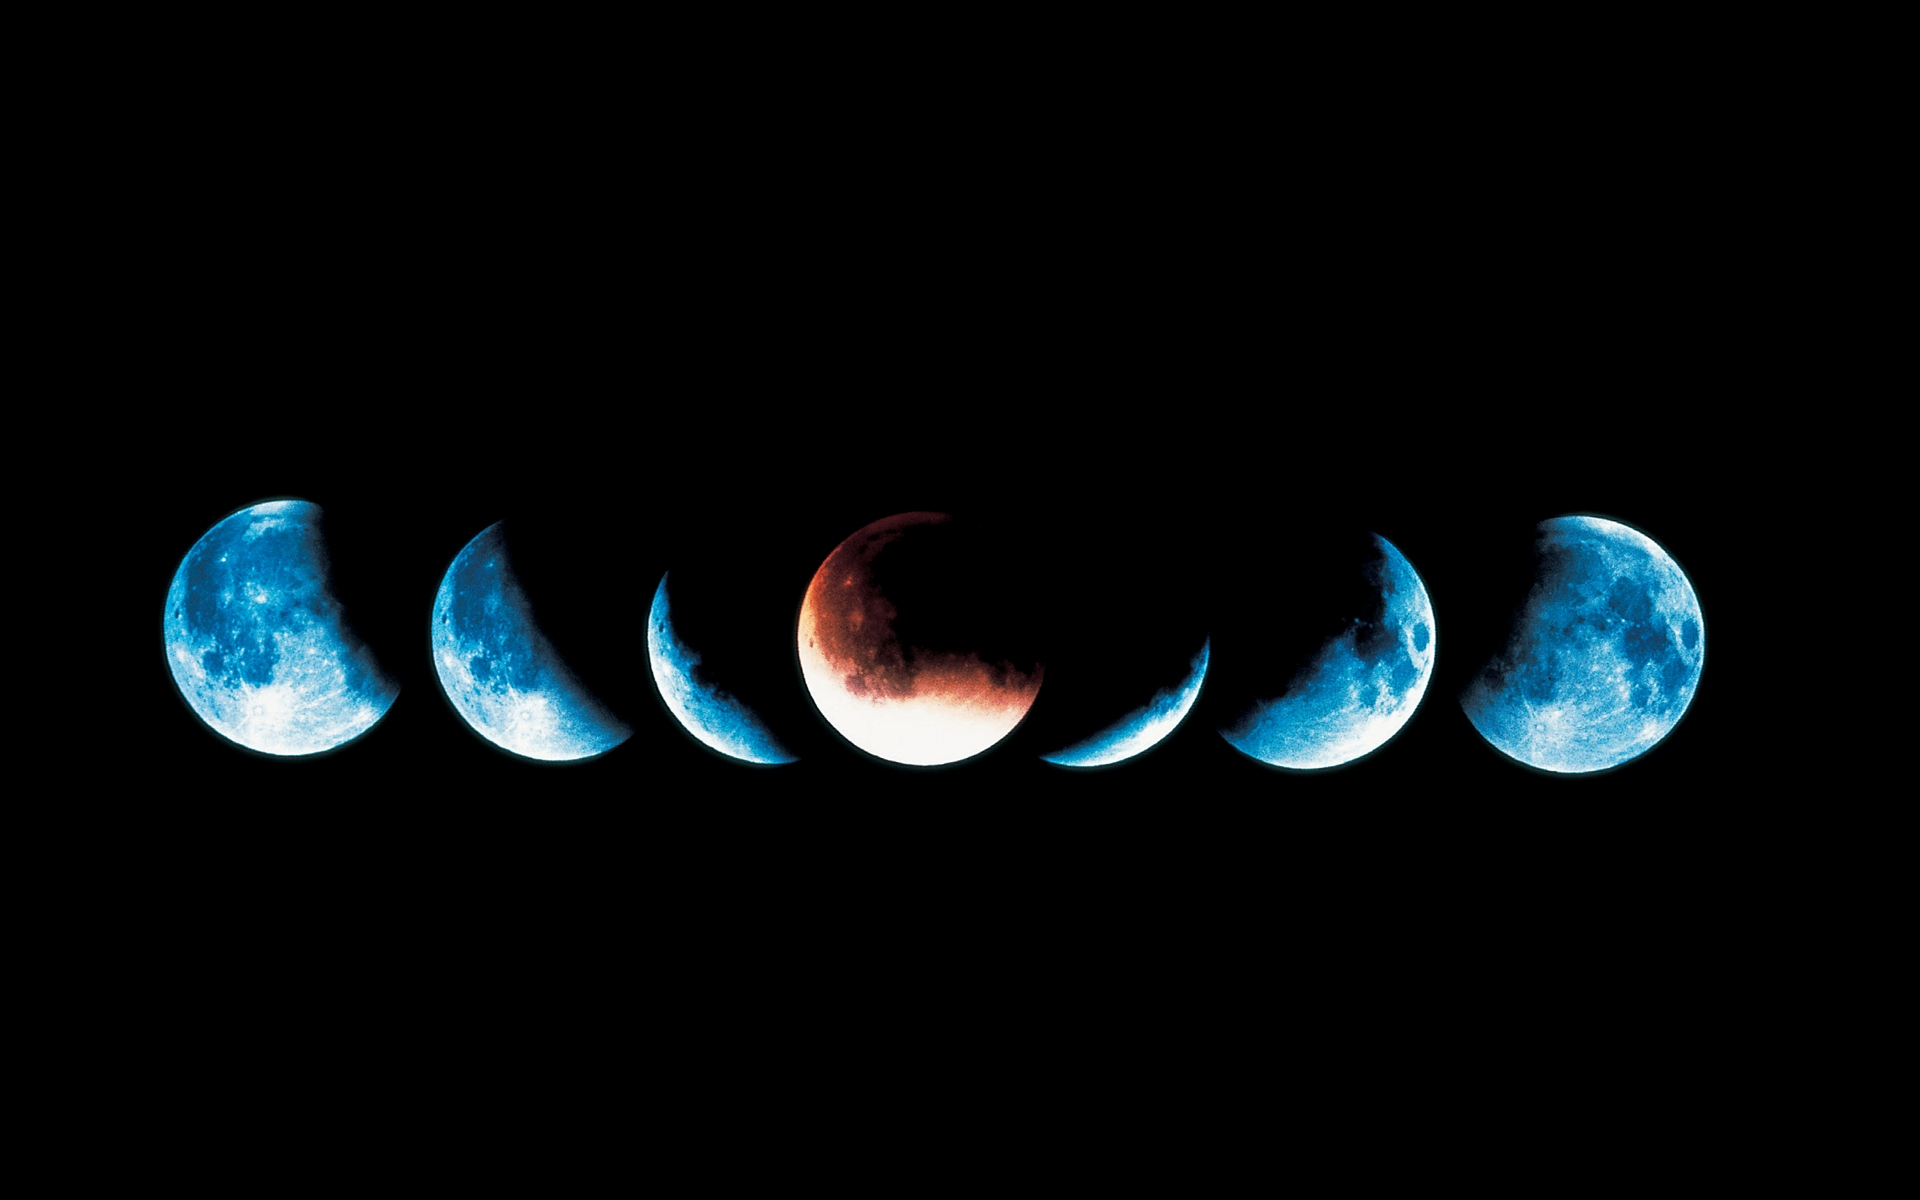 eclipse wallpapers Gallery